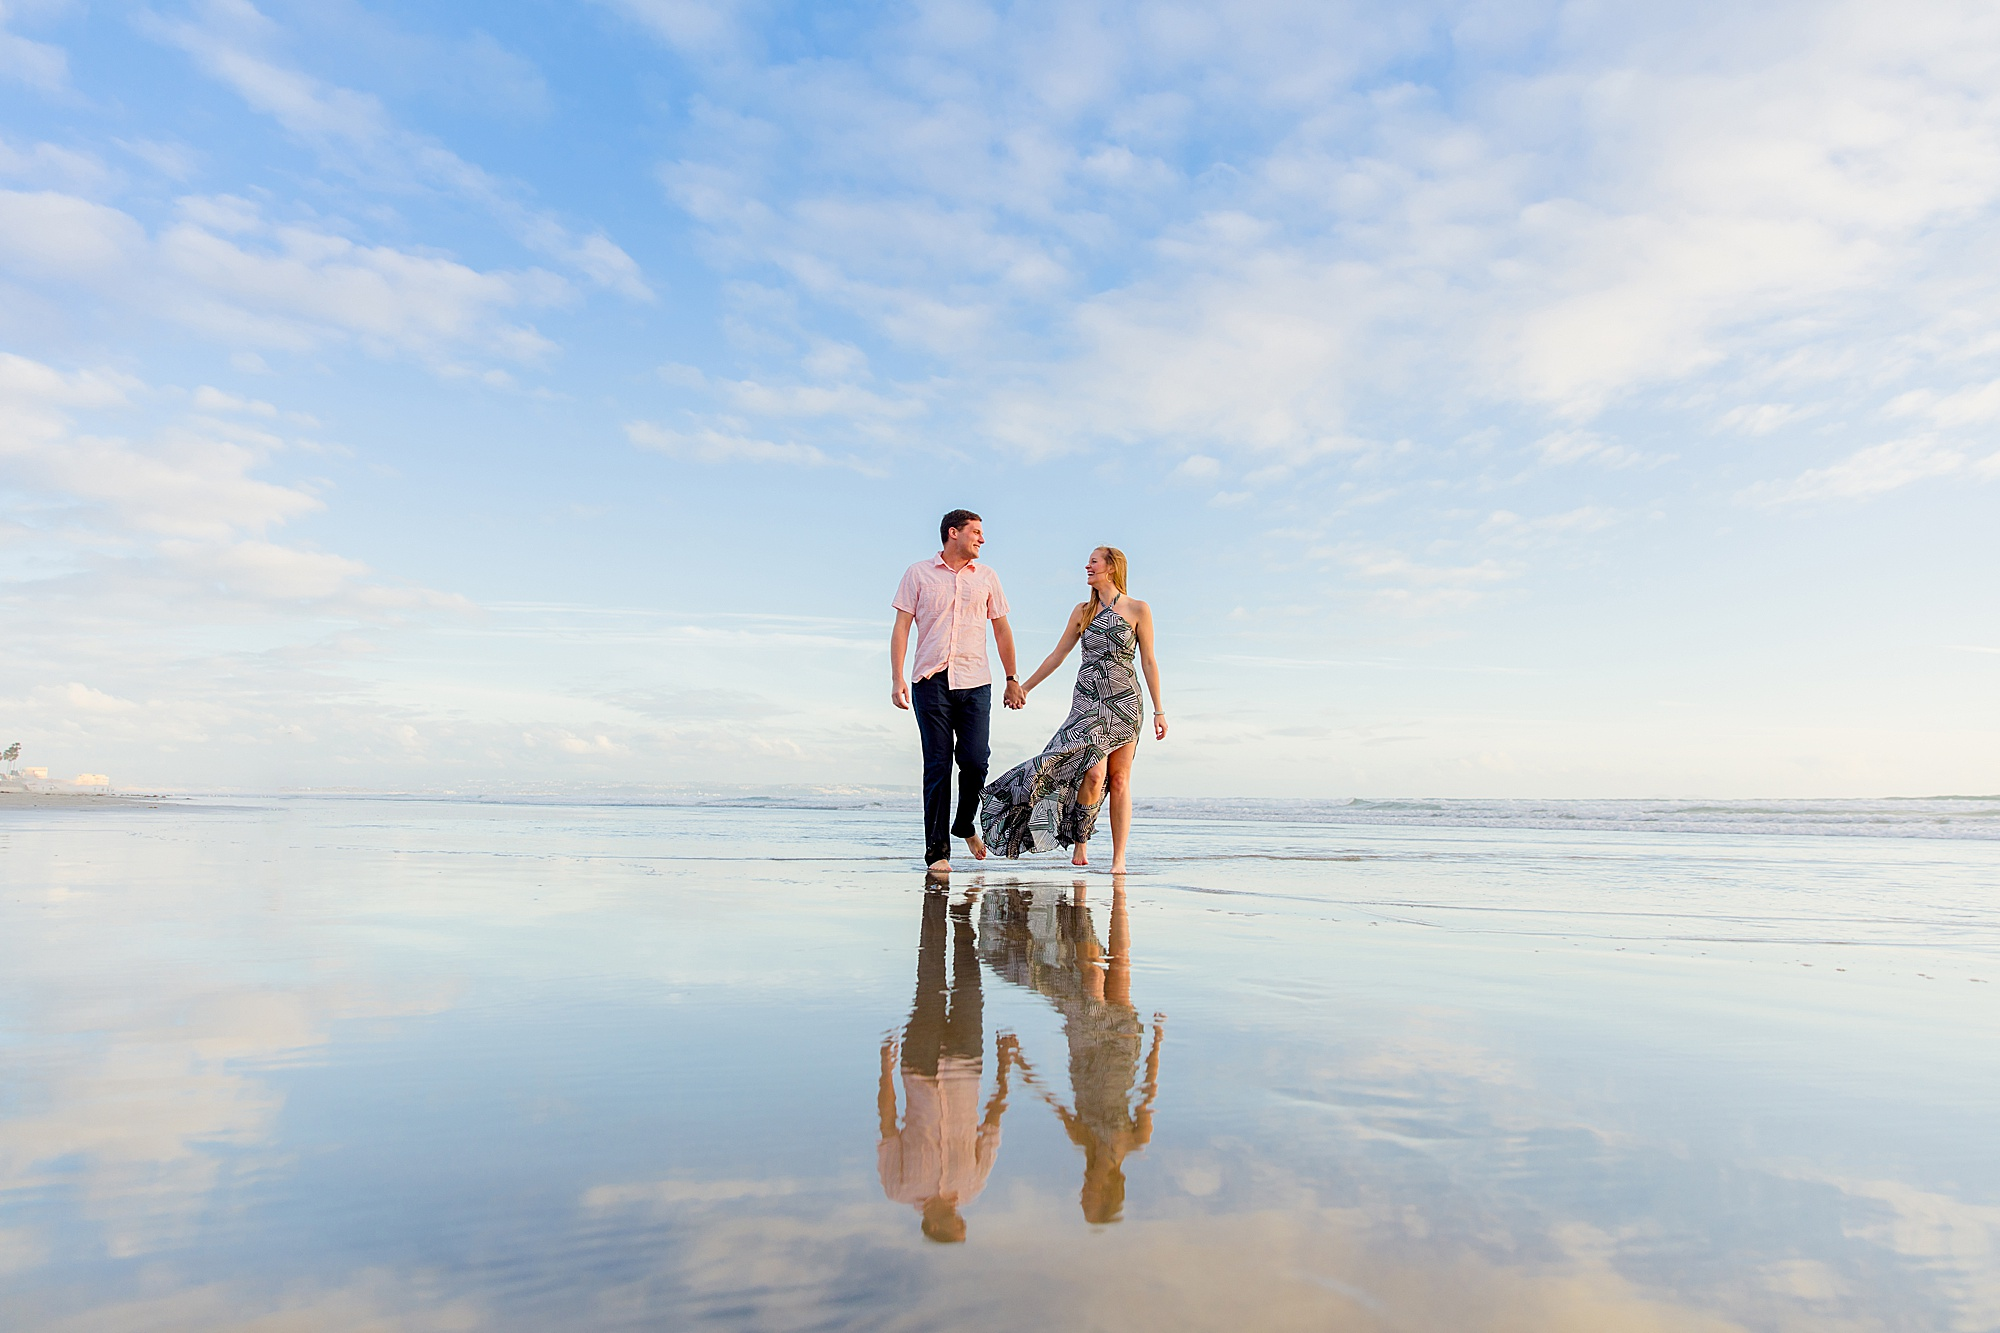 Enagegement at the Del | San Diego Beach Photography